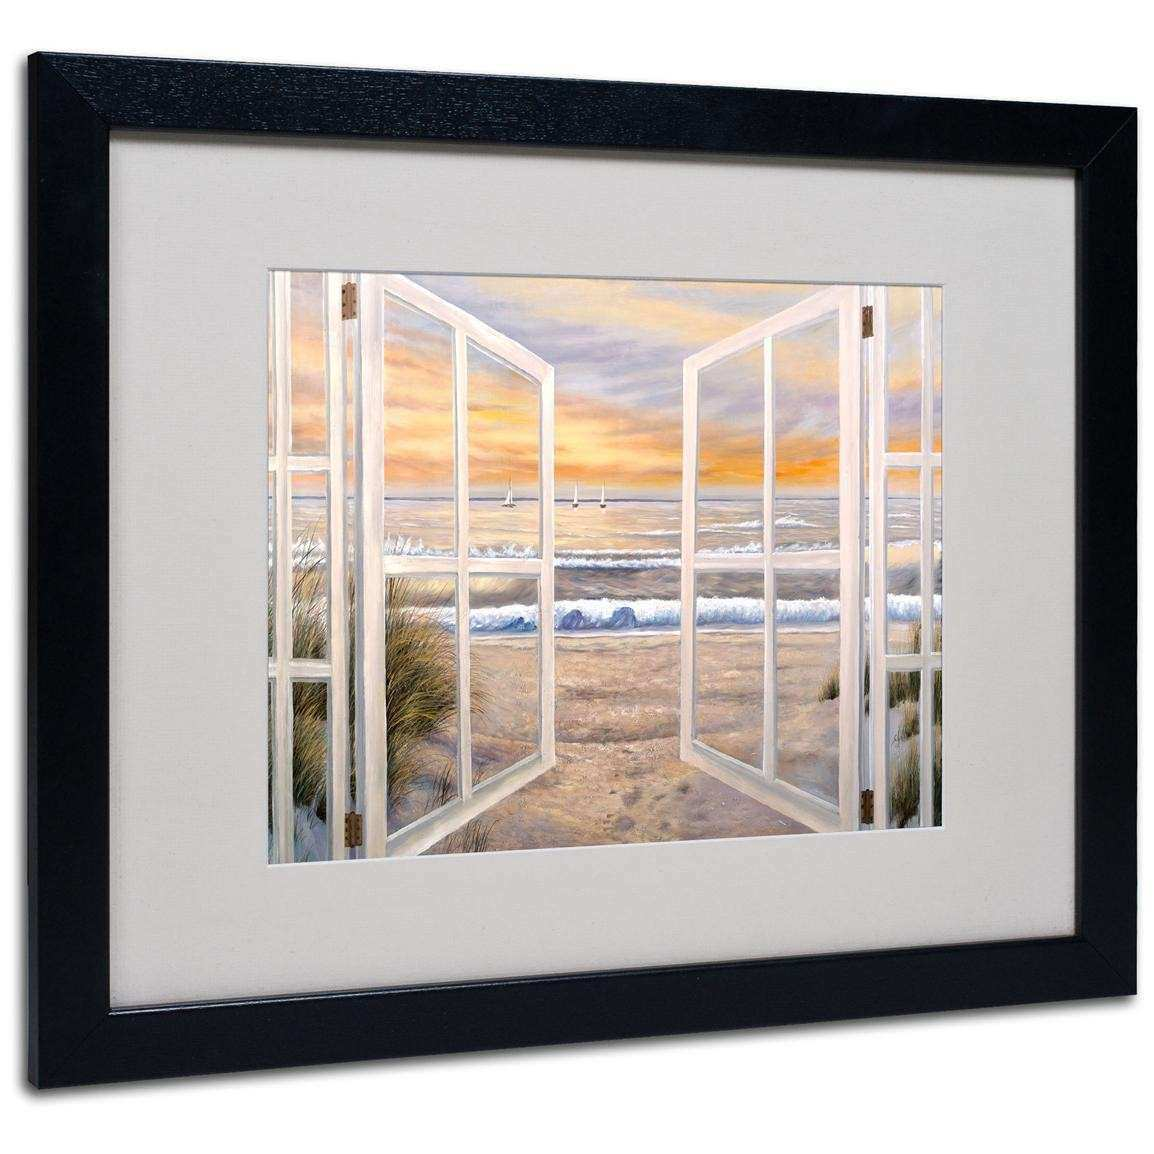 """Elongated Window"" Framed Matted Art by Joval"